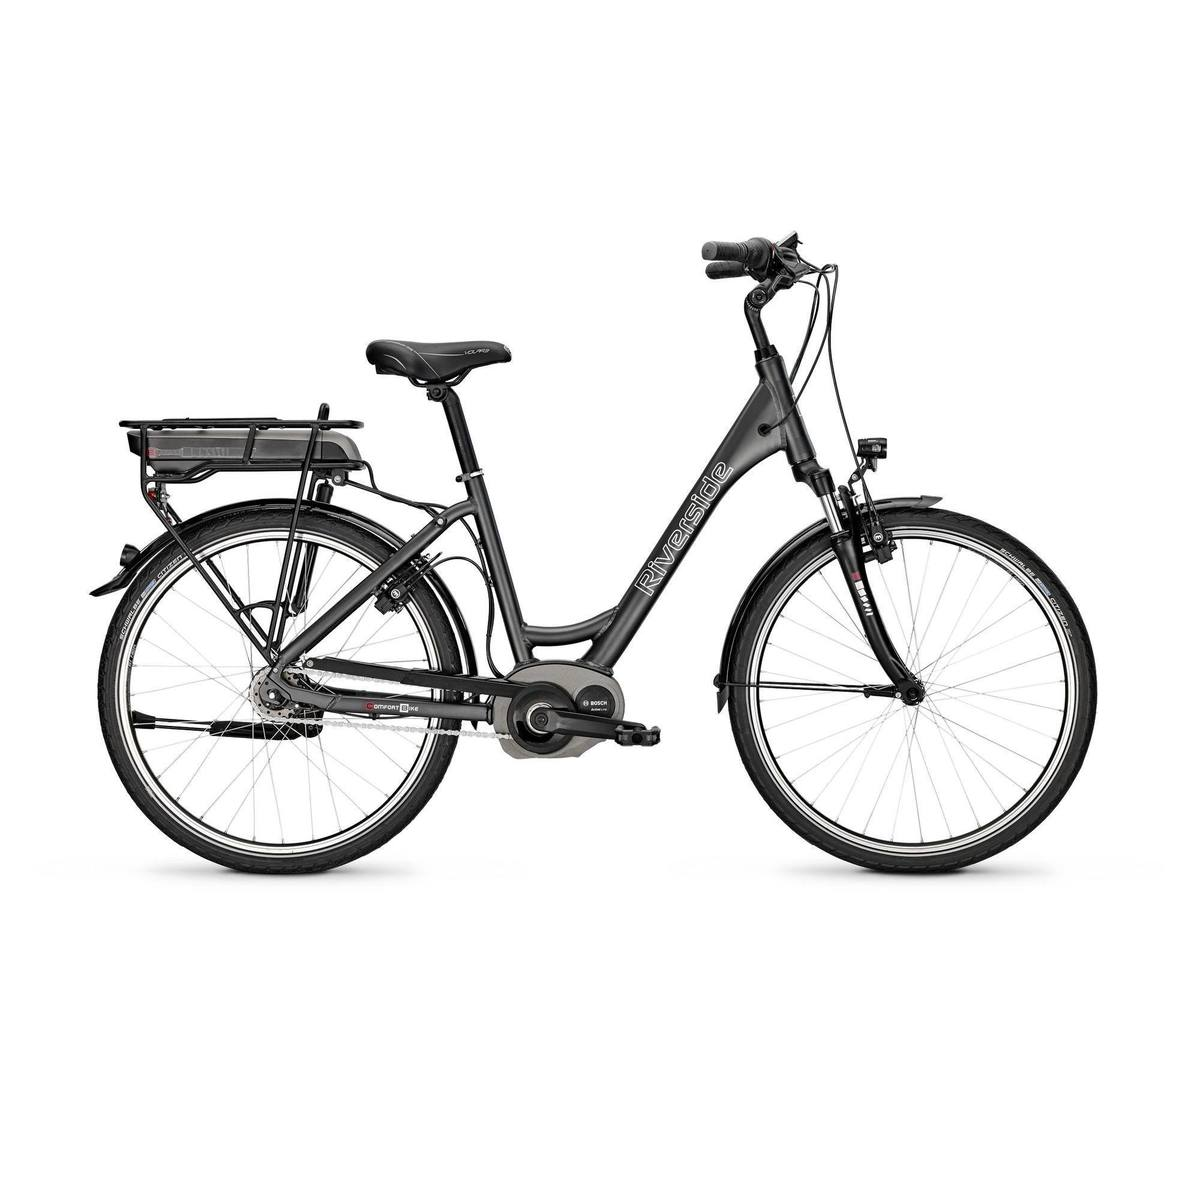 "Bild 1 von E-Bike 26"" Riverside City Nexus 8 RT Active 400Wh"